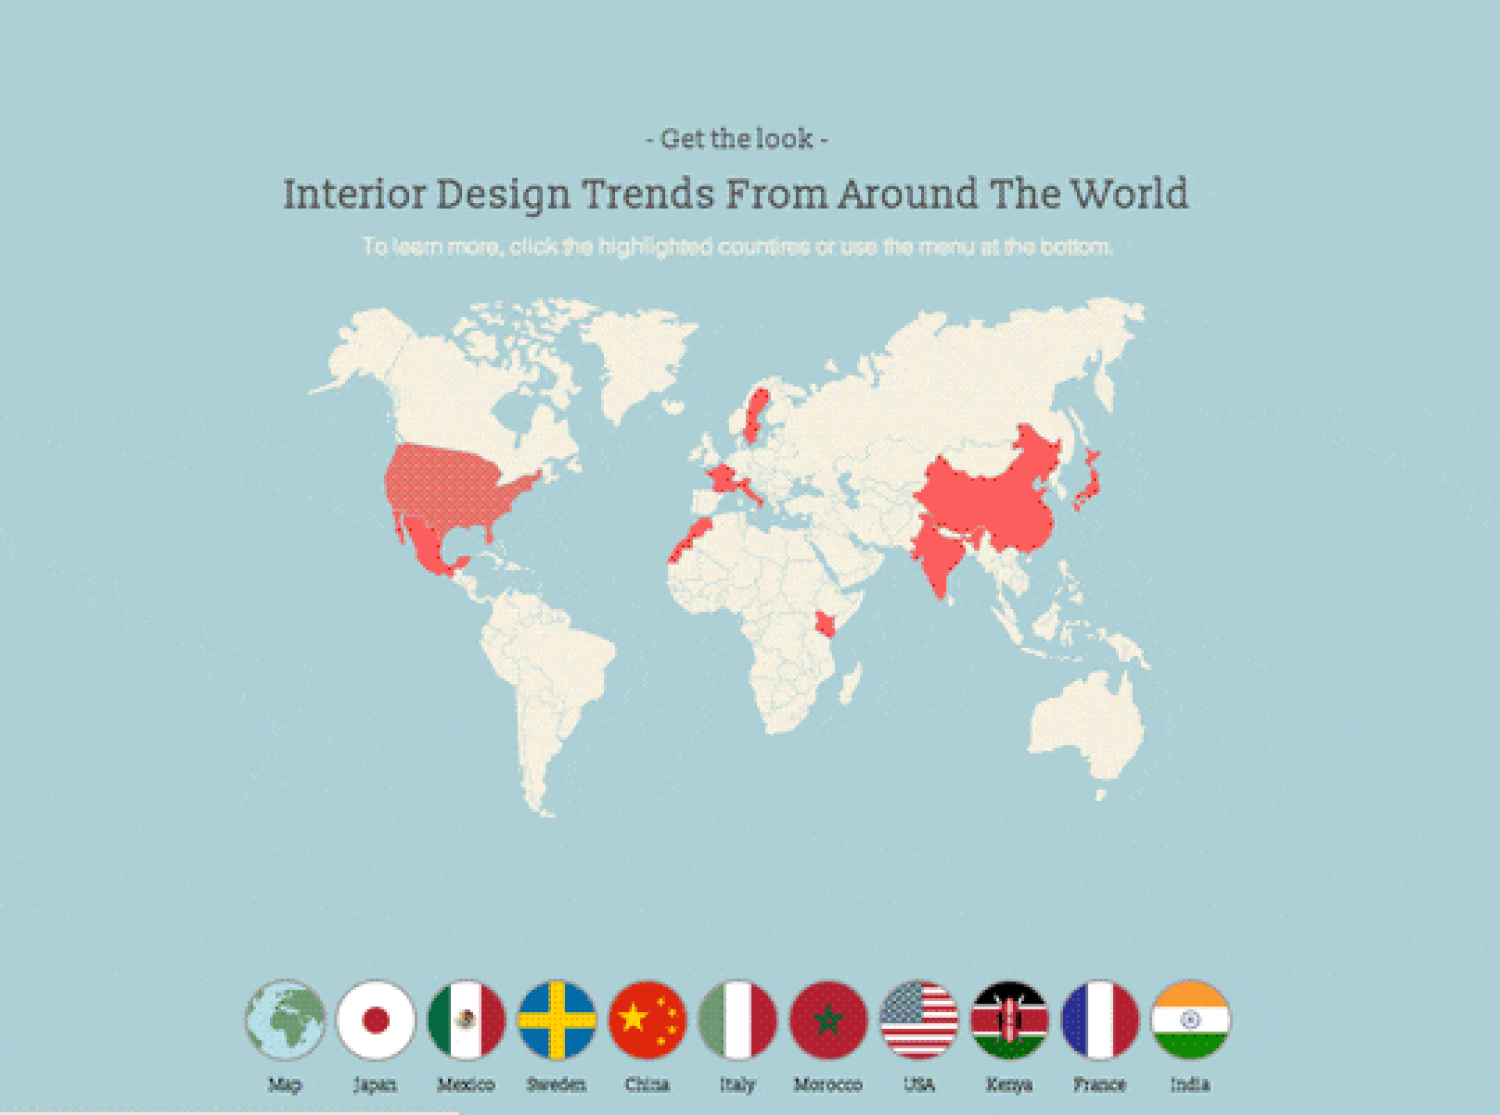 Interior Design Trends From Around The World Infographic